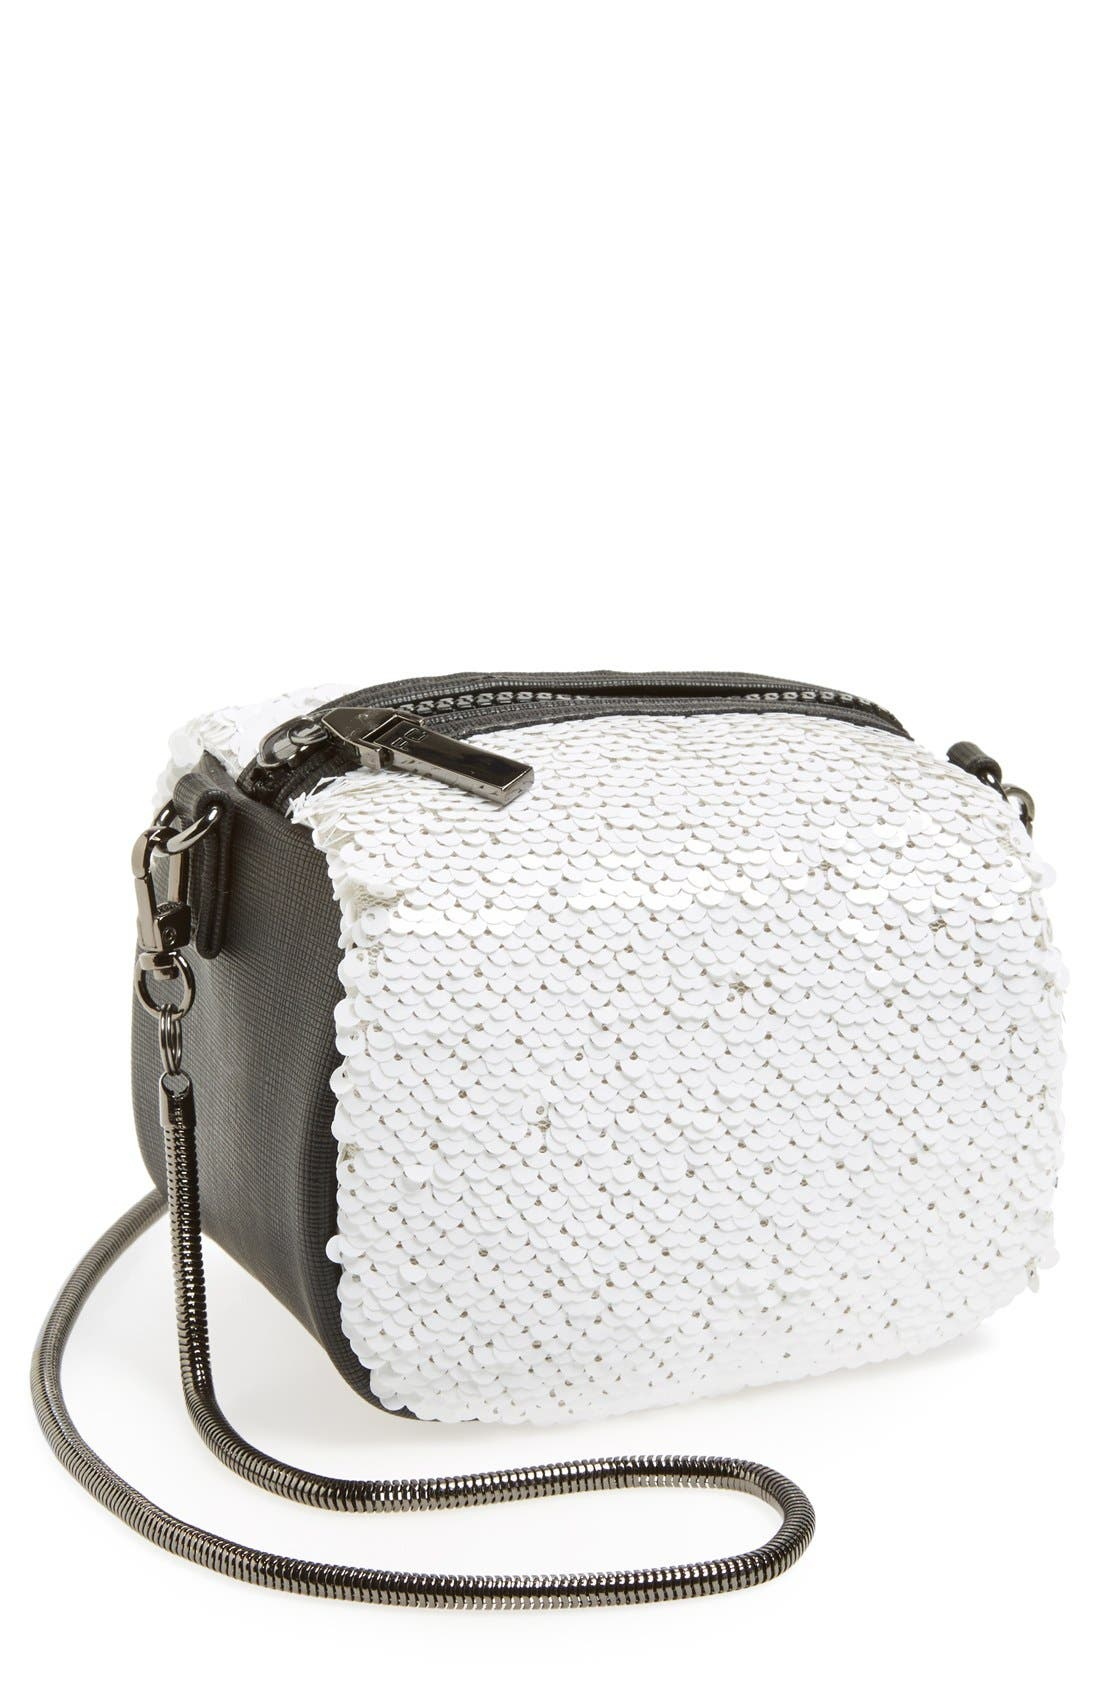 Main Image - French Connection 'Mini Sequin' Crossbody